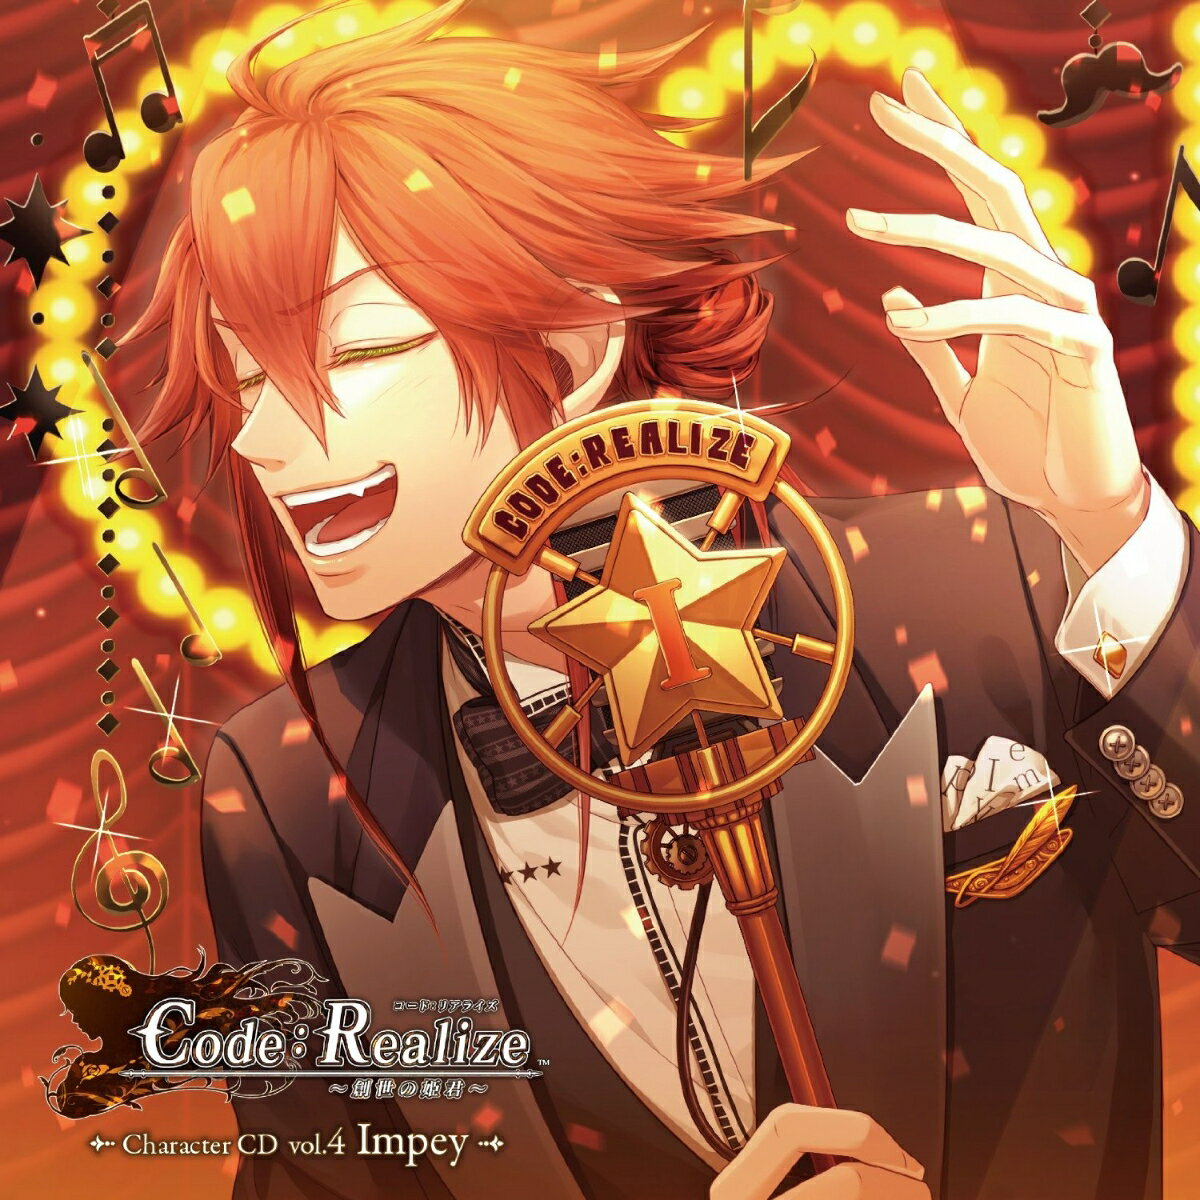 Code:Realize 〜創世の姫君〜 Character CD vol.4 インピー・バービケーン (初回限定盤)画像